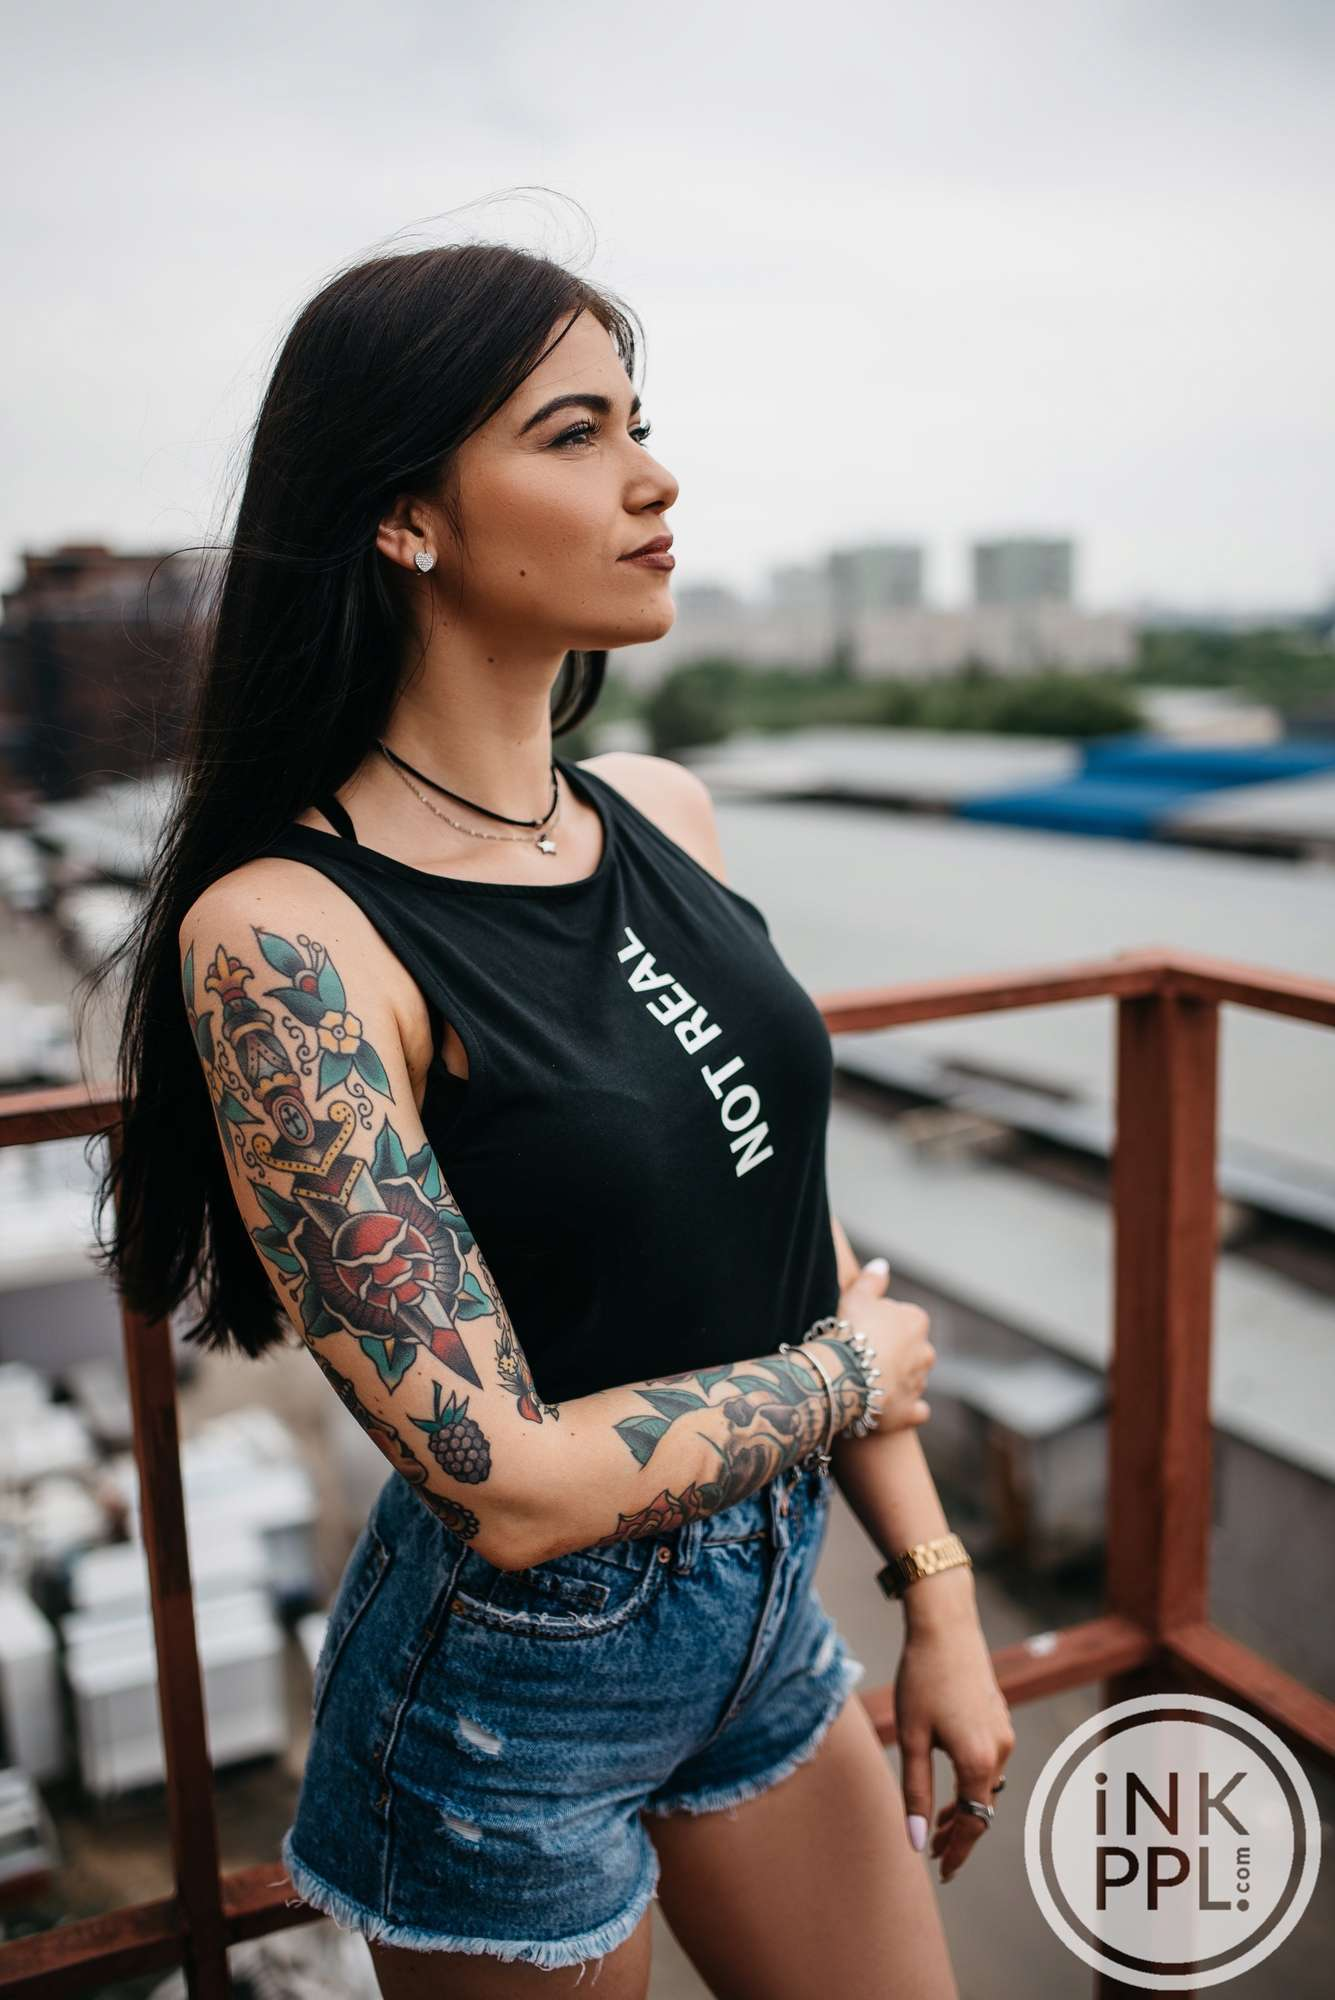 Today we want to present to you an article dedicated to the winner of the International Moscow Tattoo Week 2018's contest, which took place in the social networks accounts of the event. Please, meet - Anastasia Svechnikova.